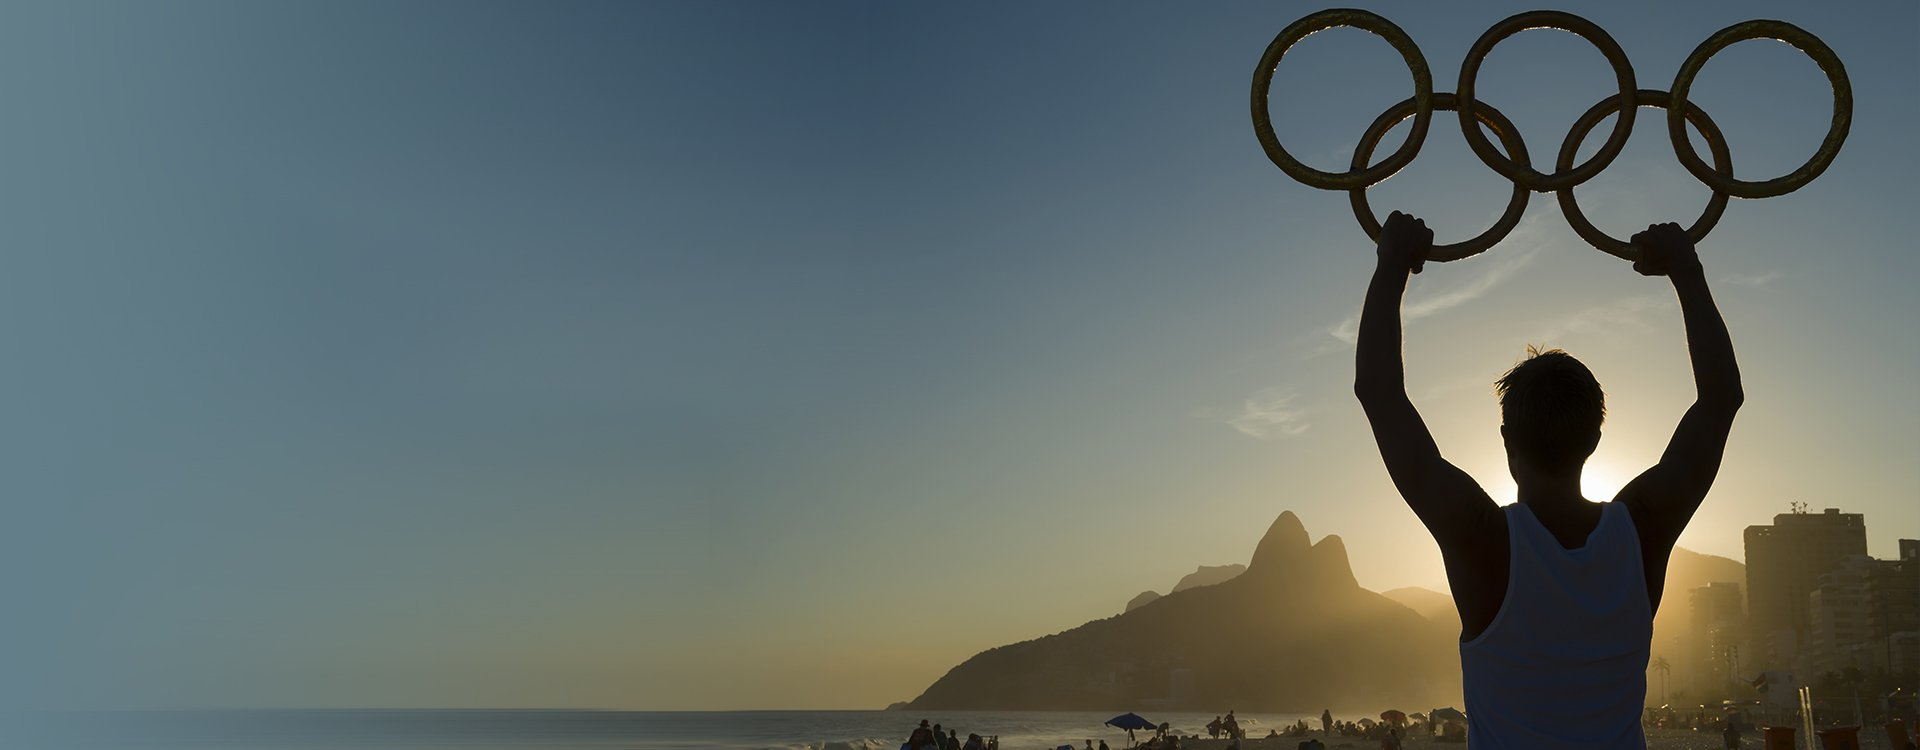 Rio 2016 Olympic games: an overview